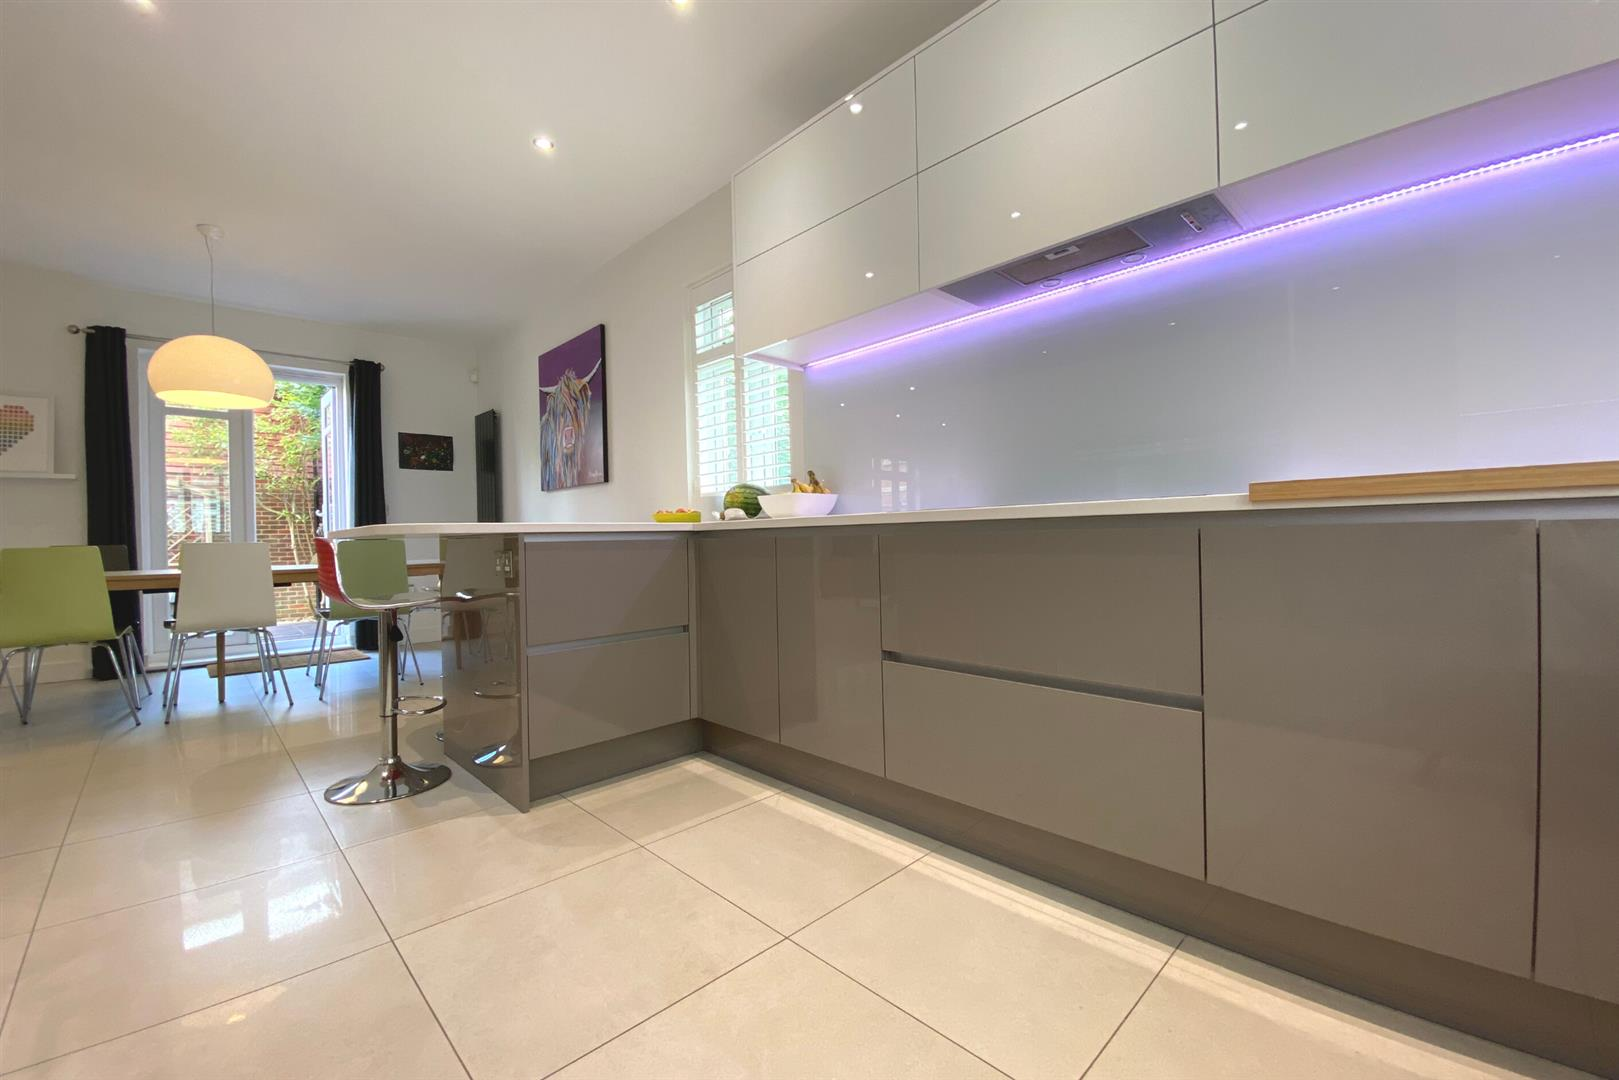 6 bed detached for sale in Lower Earley  - Property Image 3